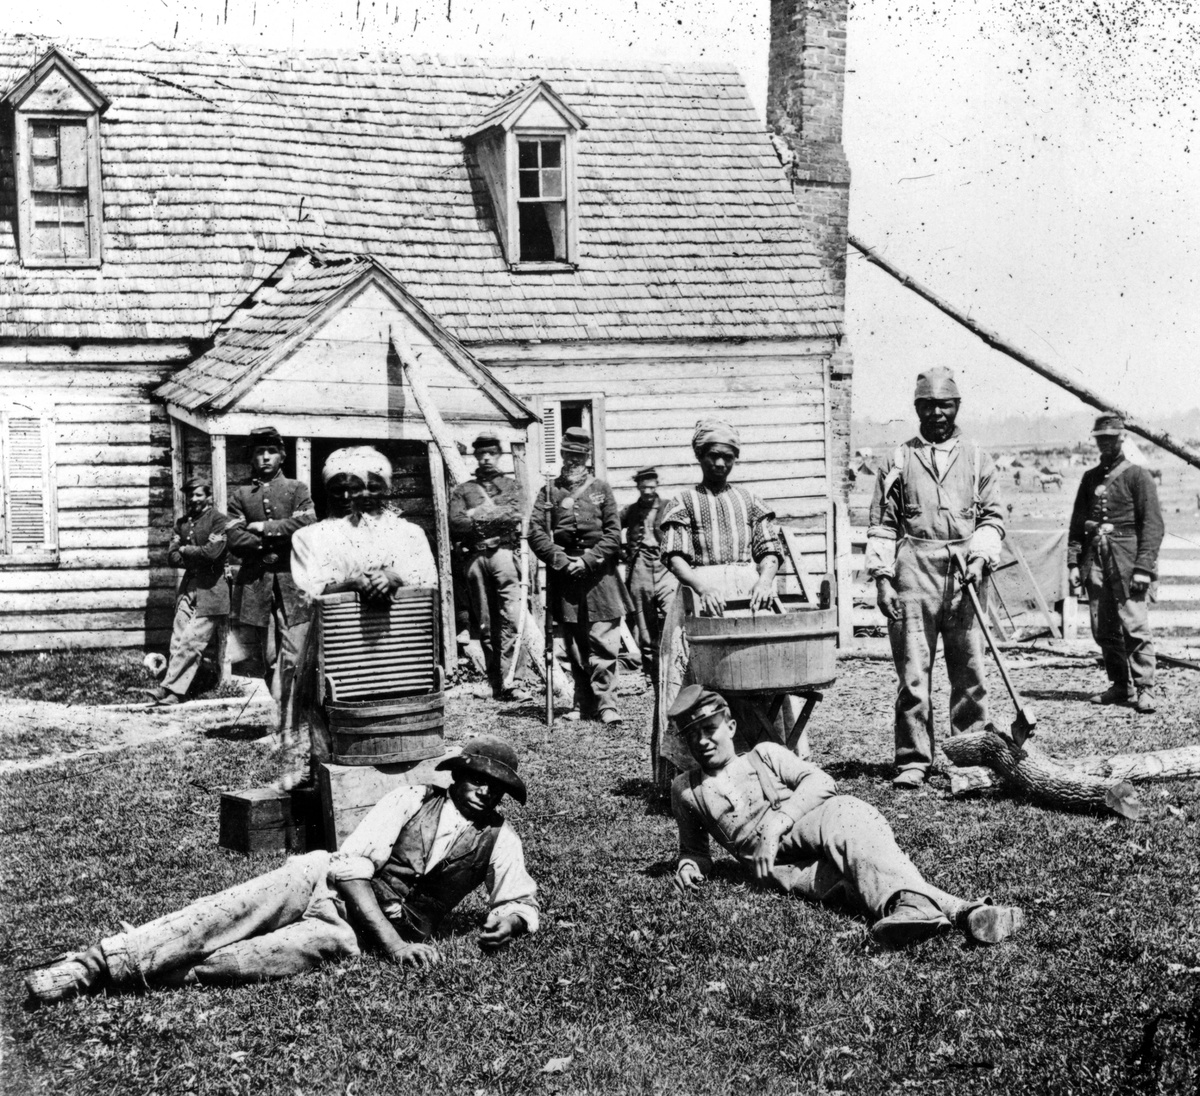 Group of contraband slaves at Allens farm house near Williamsburg Road, in the vicinity of Yorkville, Virginia, during the American Civil War, from the New York Public Library, 1862.